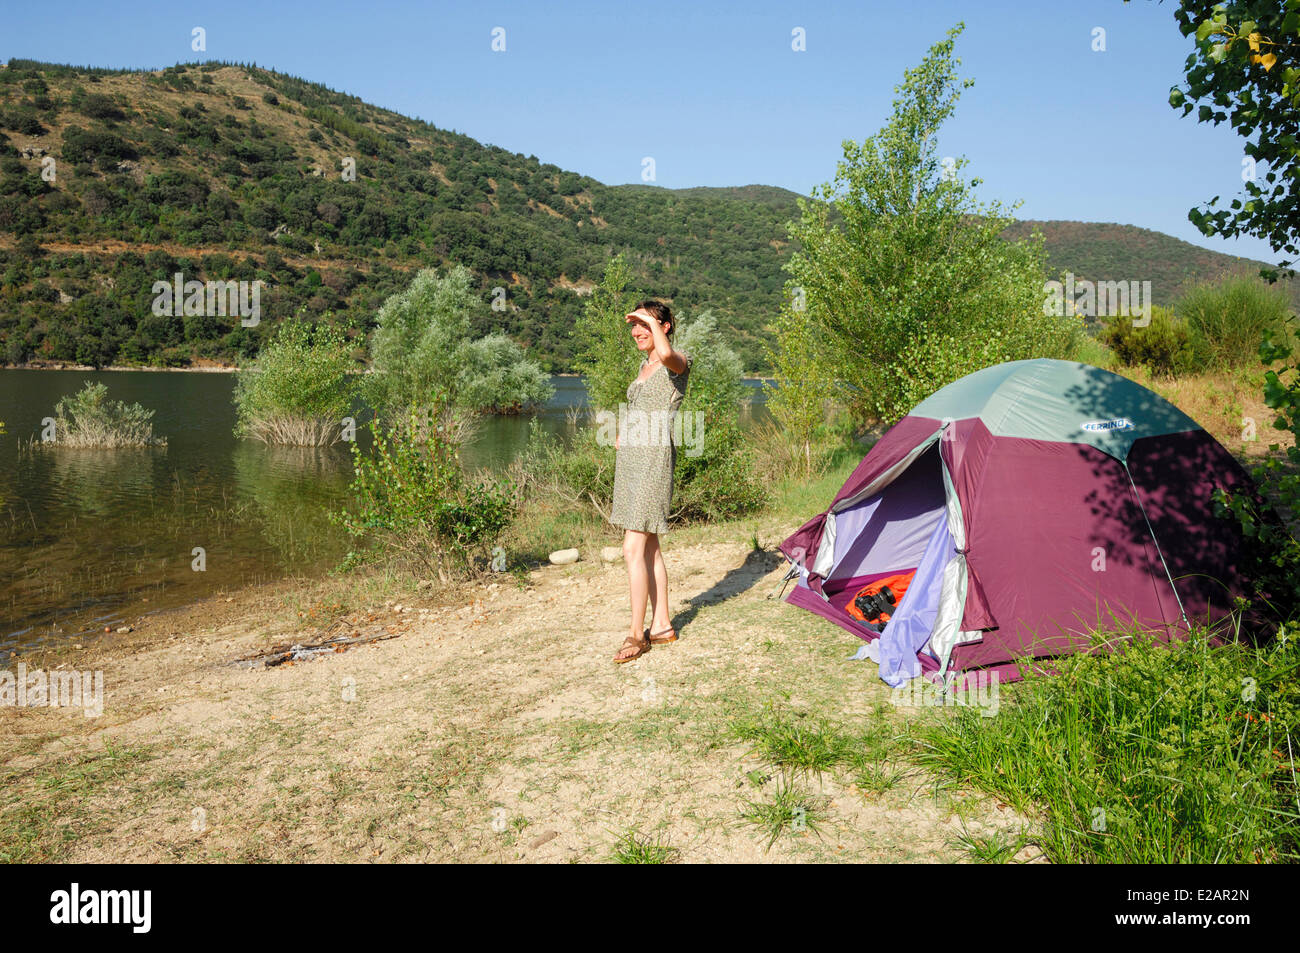 France, Pyrenees Orientales, Caramany, A camper near the Lake - Stock Image